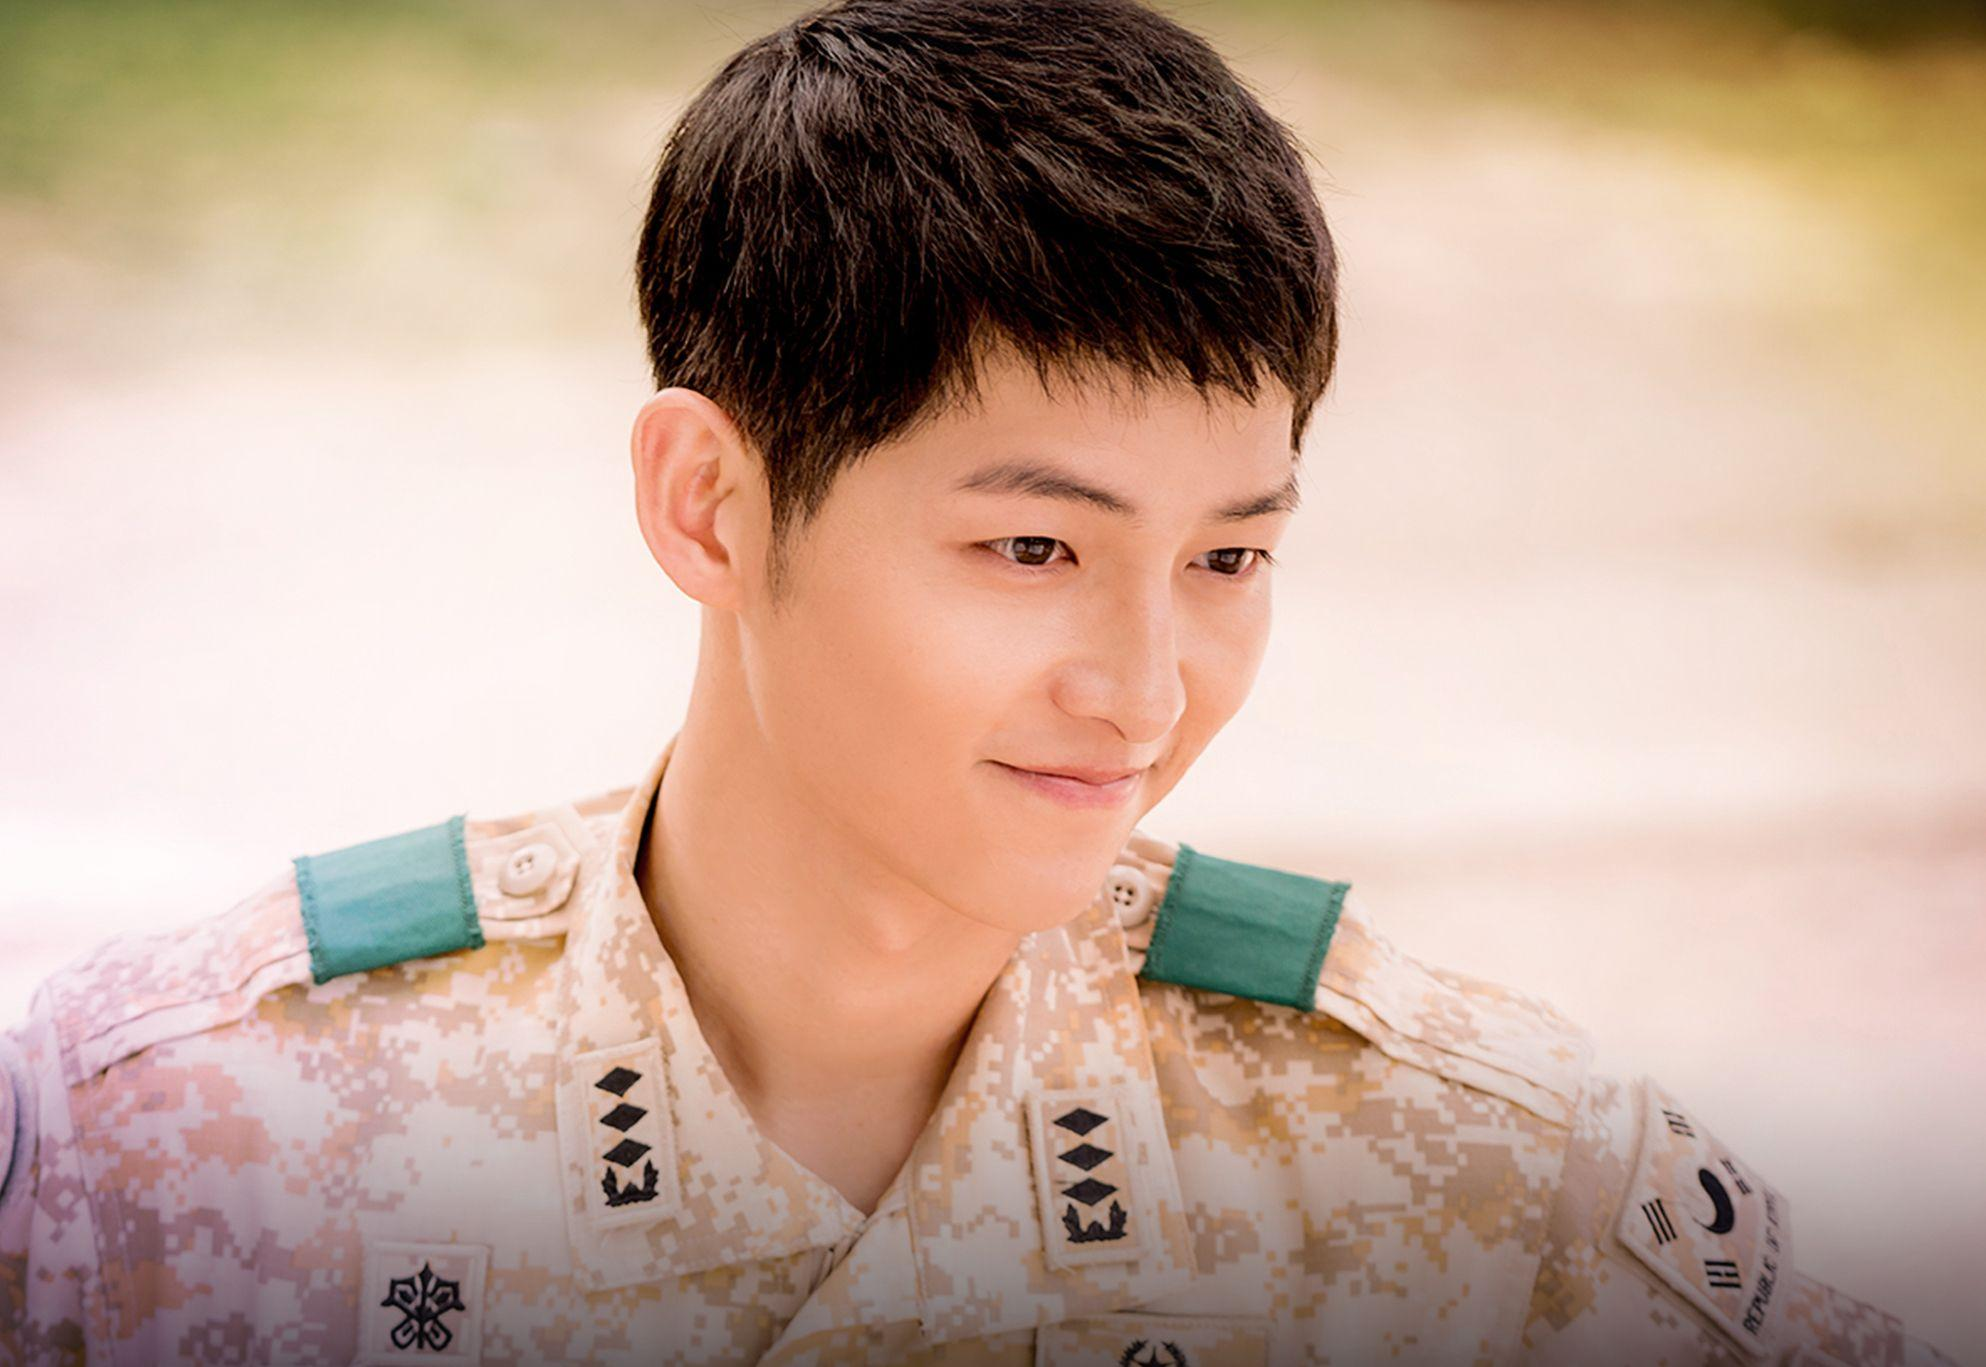 Song Joong Ki Wallpapers, Interesting Song Joong Ki HDQ Image